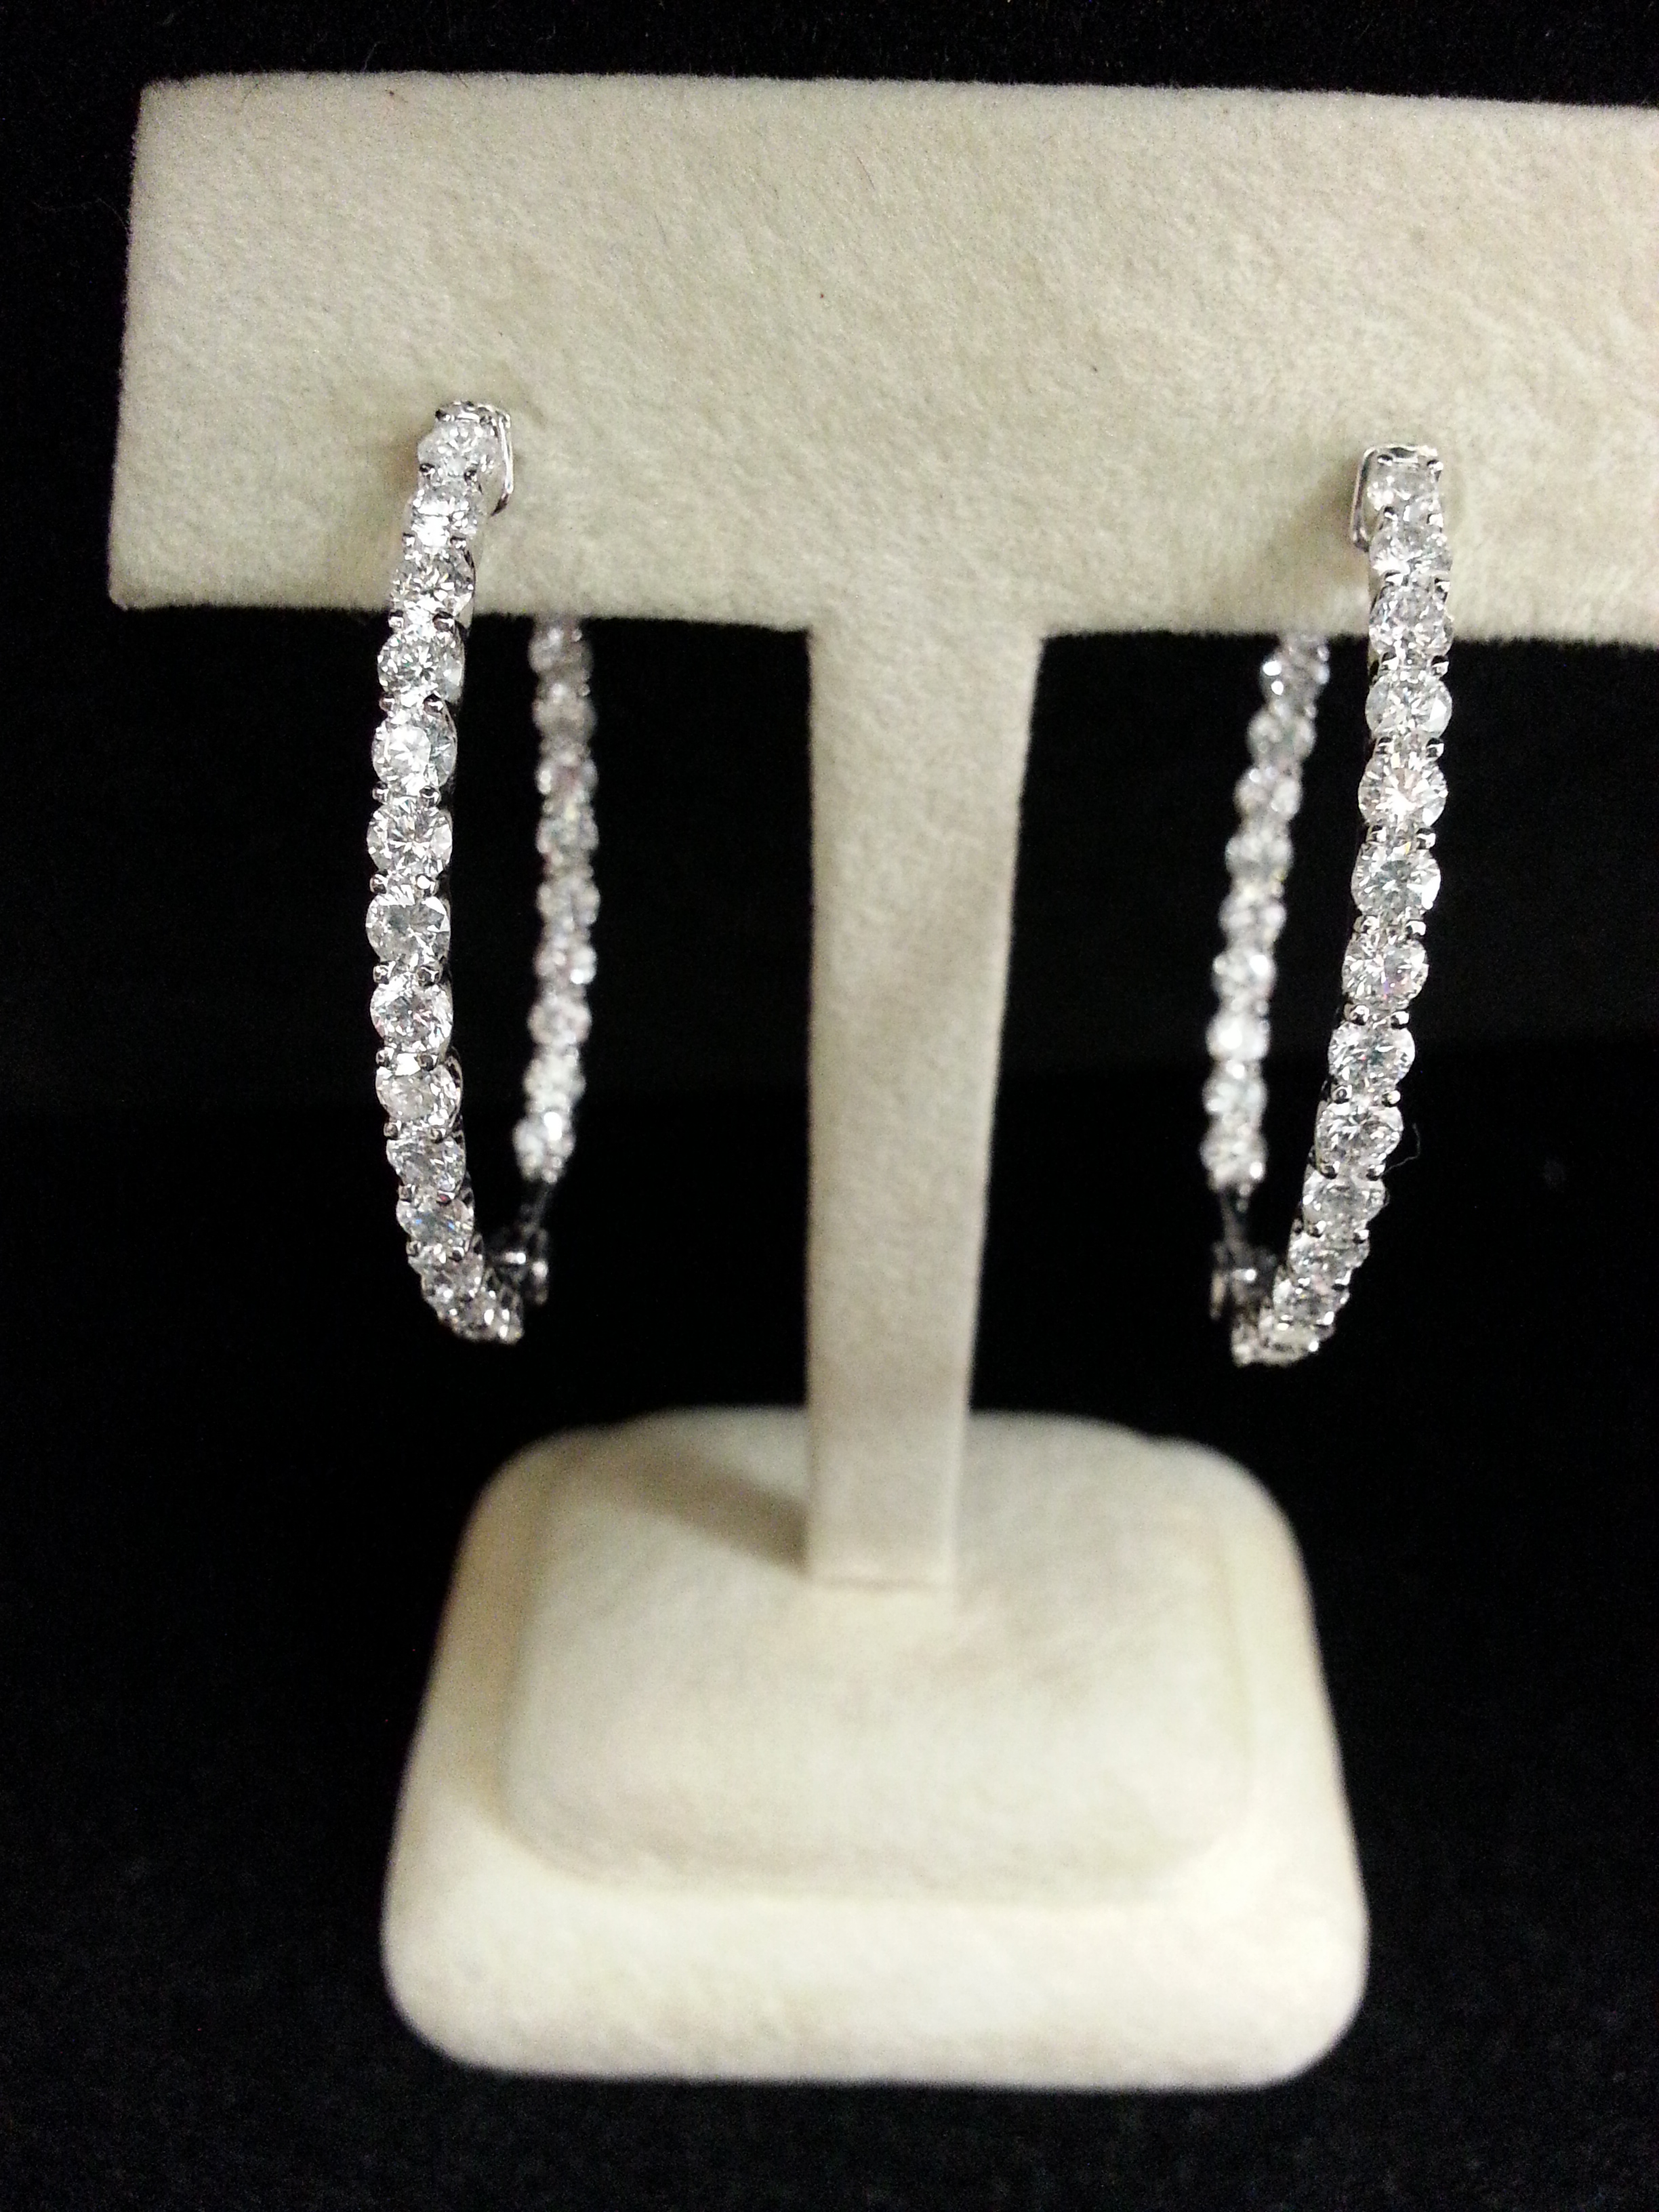 18k White Gold Diamond Oval Hoops with 3.71ctw of Diamonds.